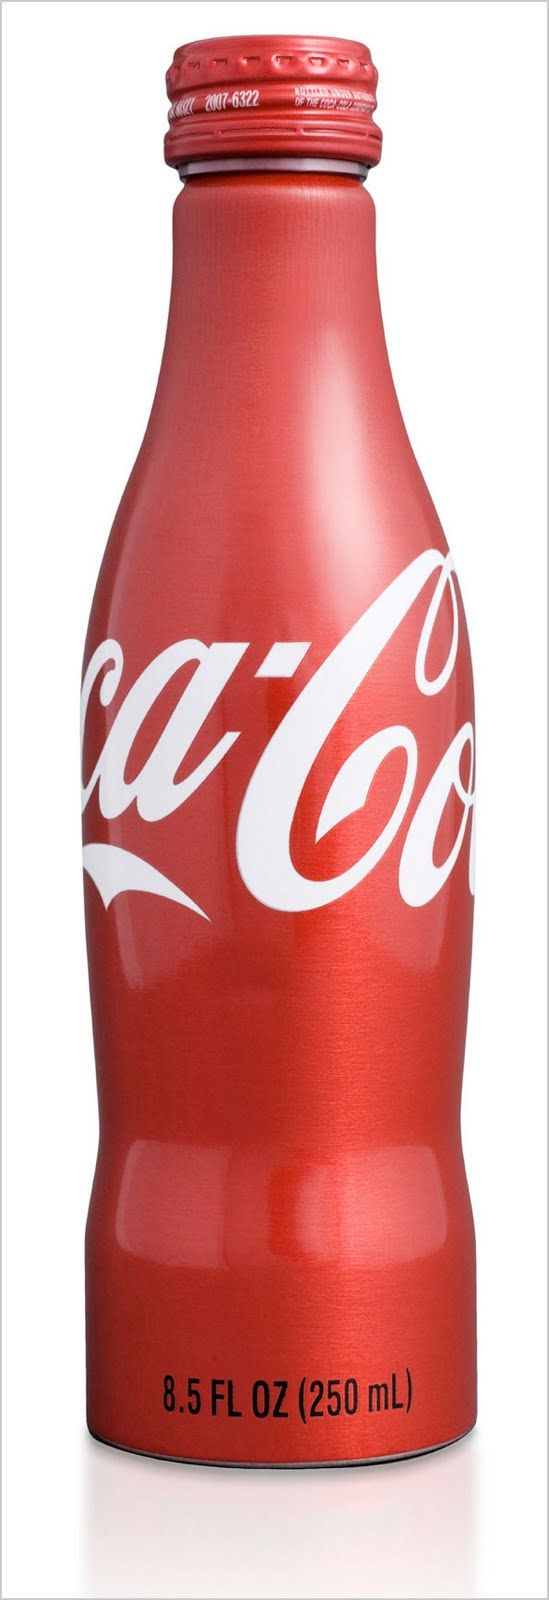 Coca~Cola aluminum bottle